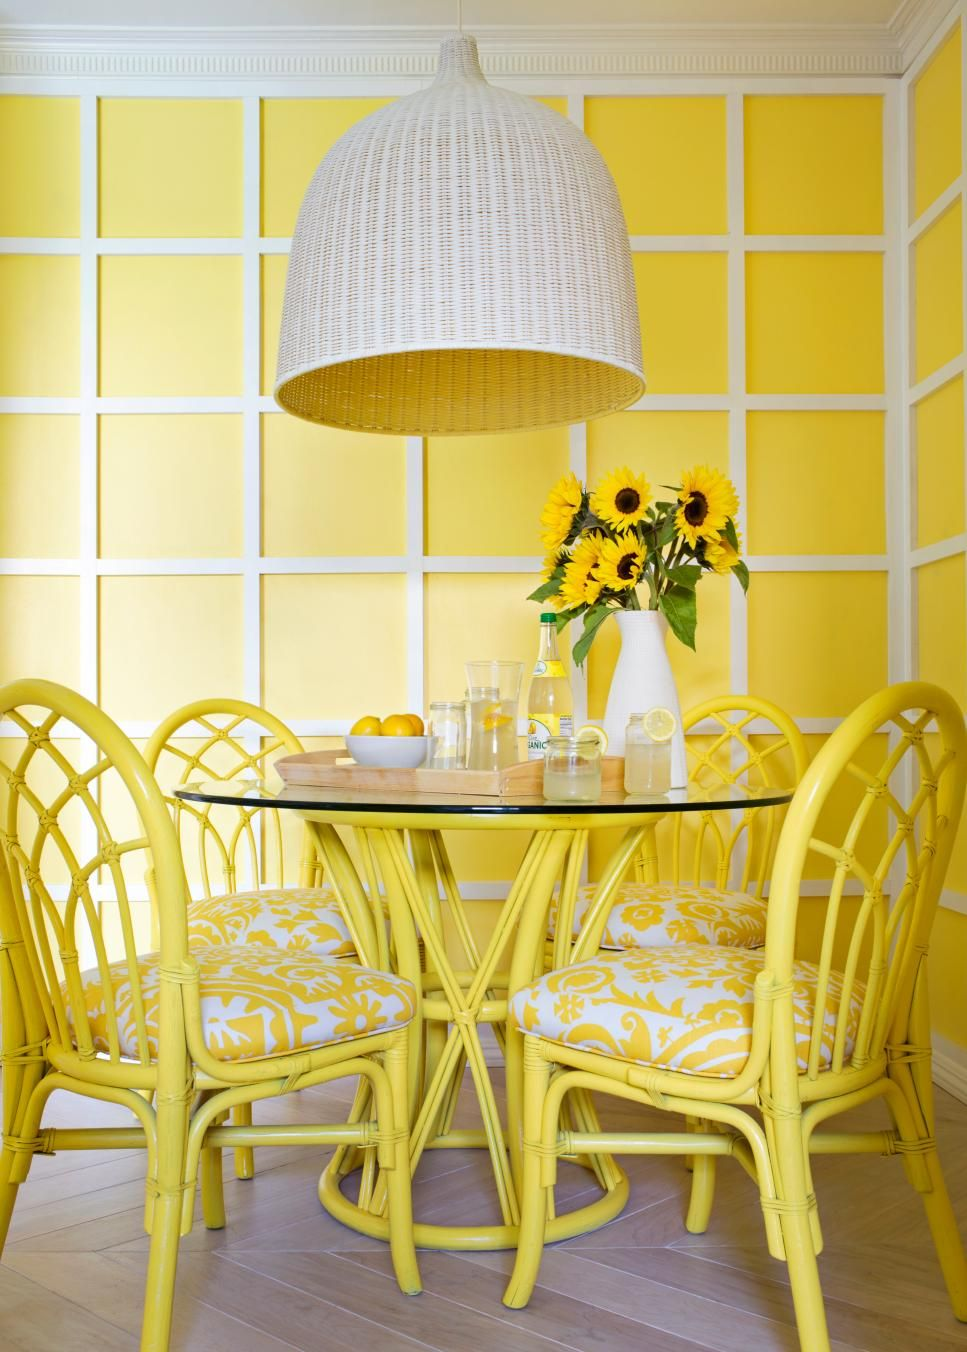 Möbel Yellow Picks The Hottest Color Right Now Home Yellow Innenräume